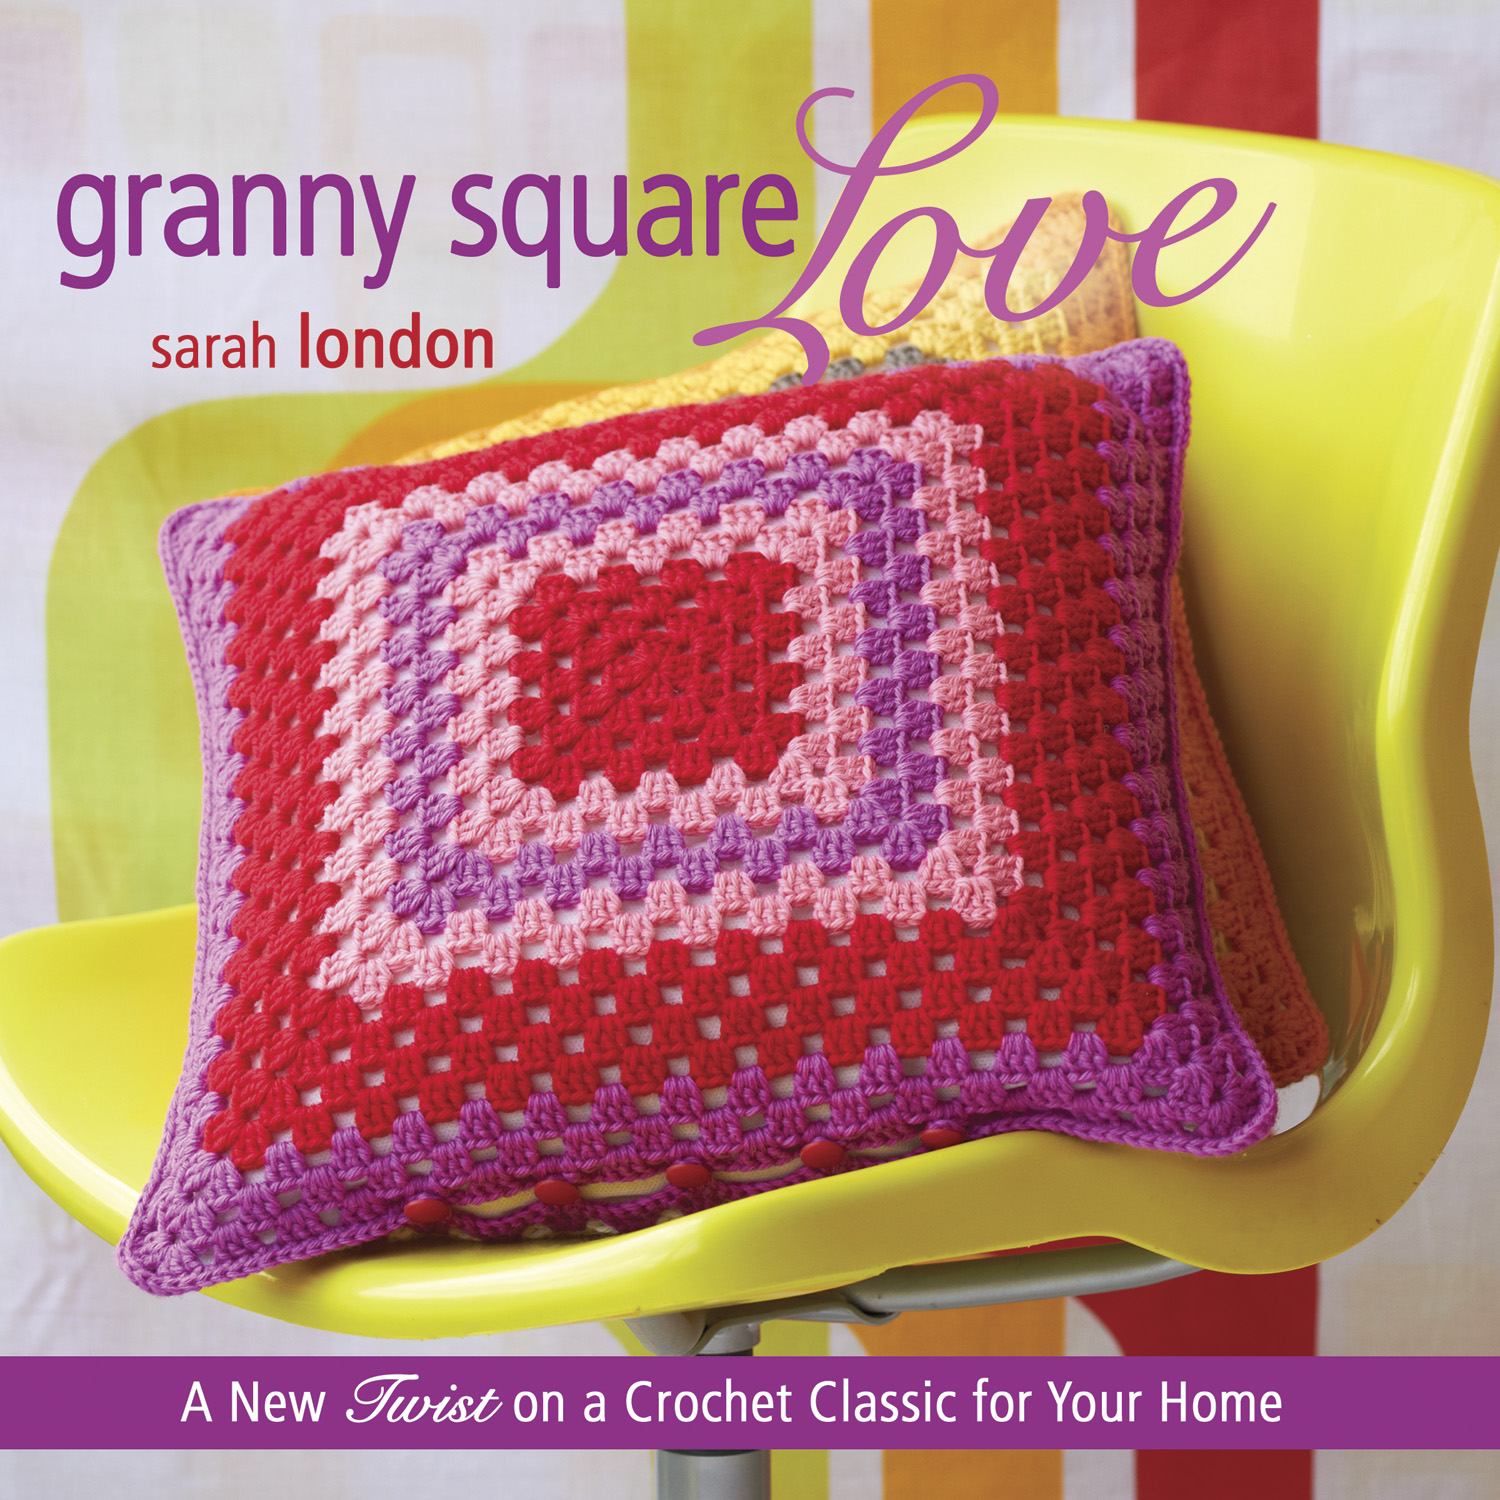 Crocheting Books : Cute Crochet Chat: Granny Square LOVE review and GIVEAWAY!